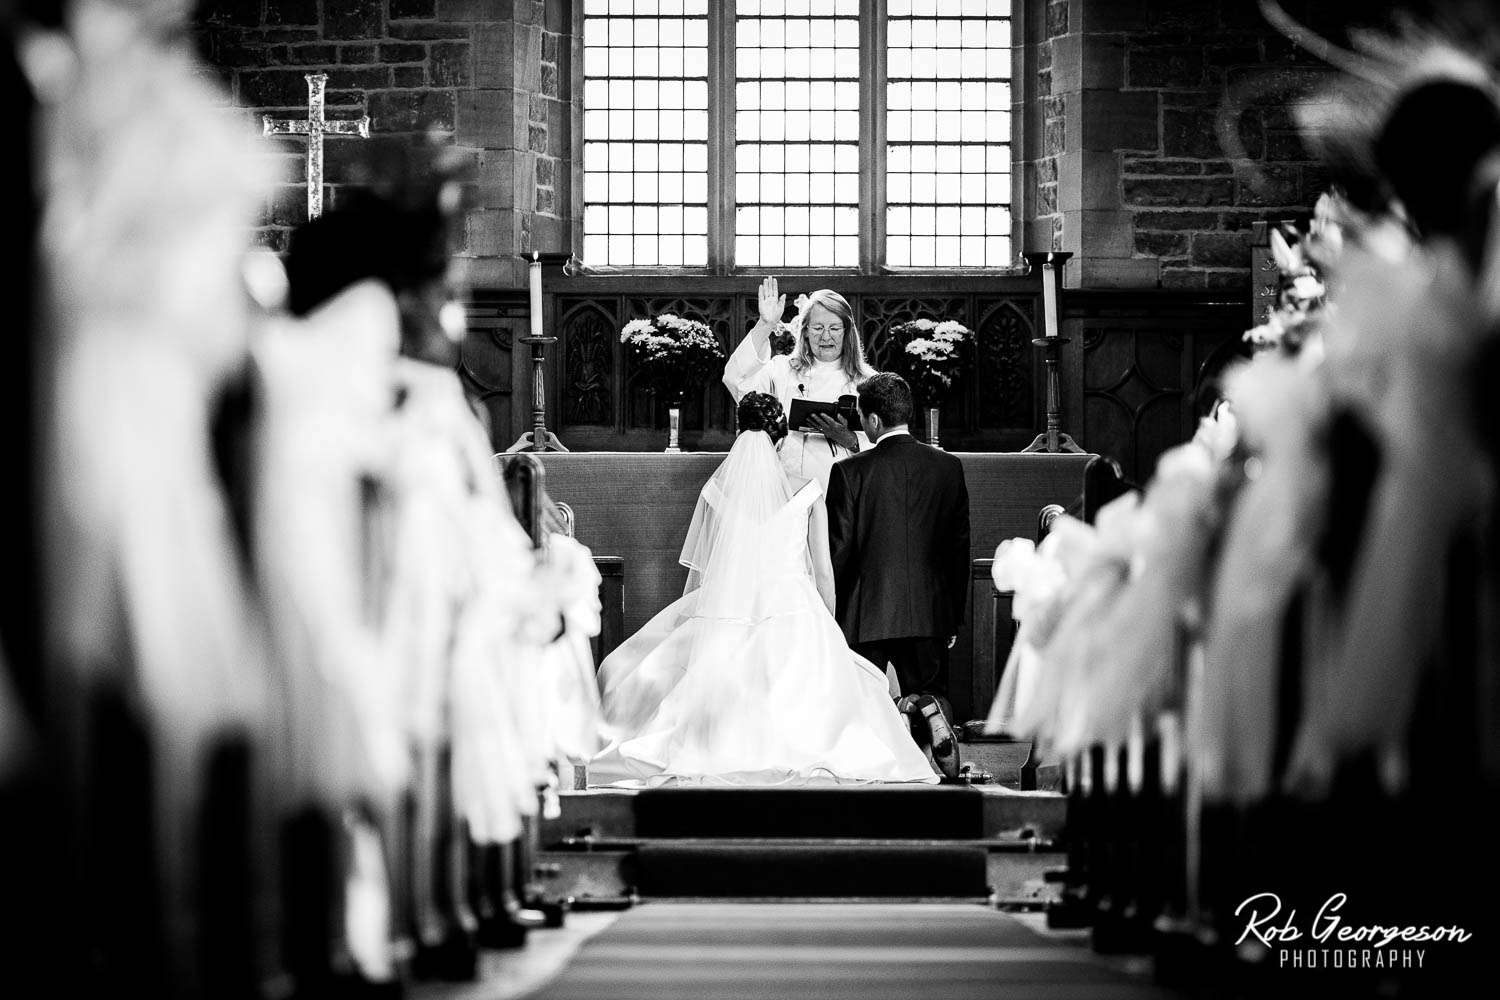 Preston_Marriott_Hotel_Wedding_Photographer (13).jpg